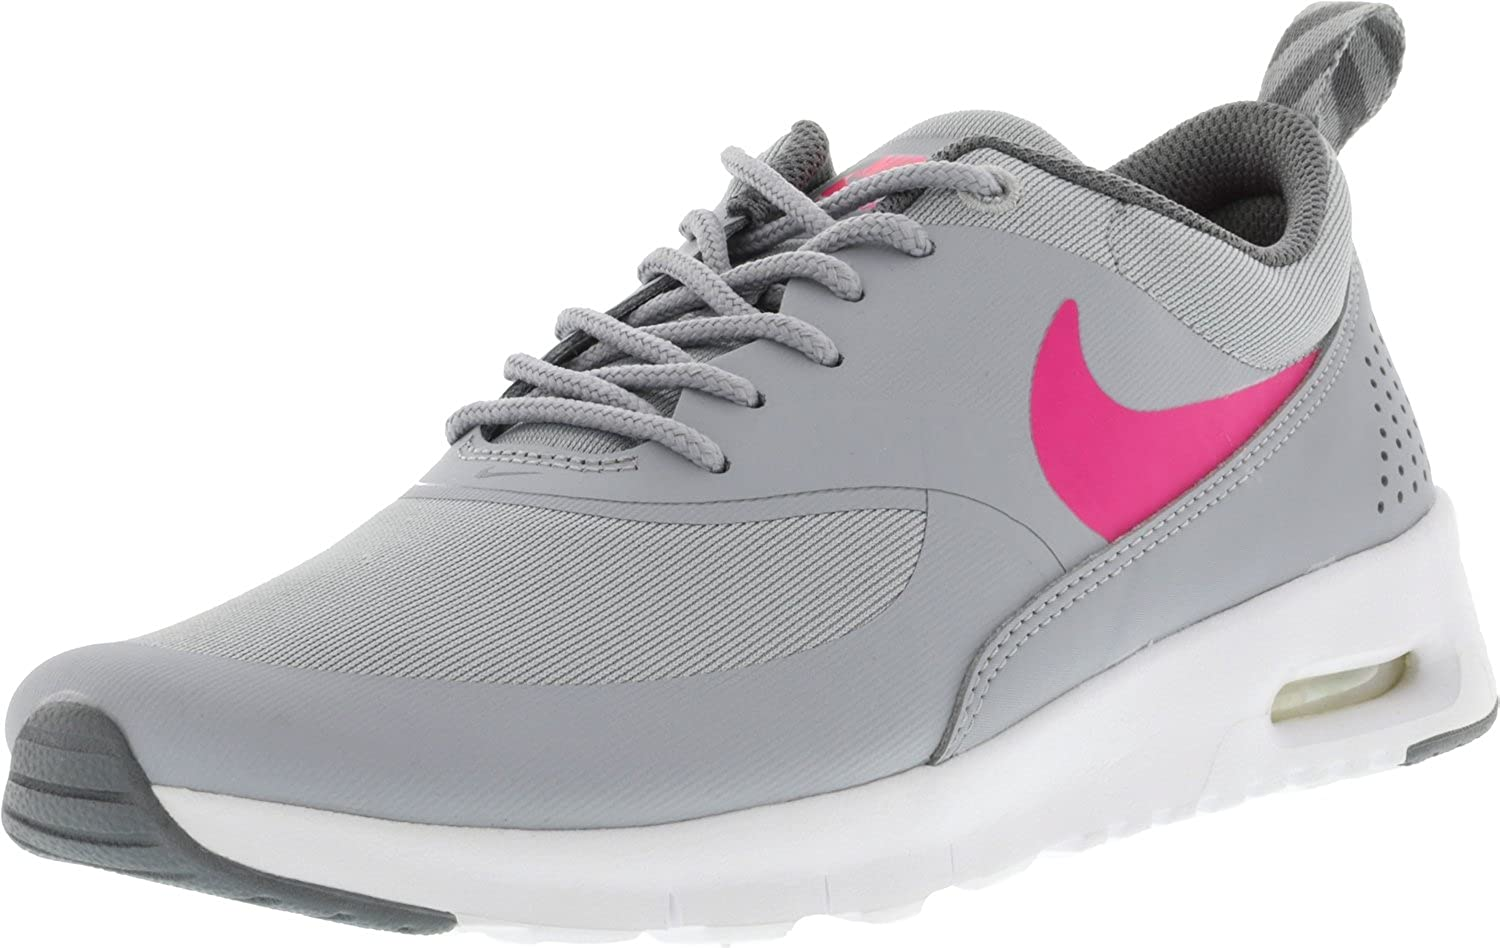 Nike Air Max Thea Athletic Gradeschool Girl's Shoes Size 7